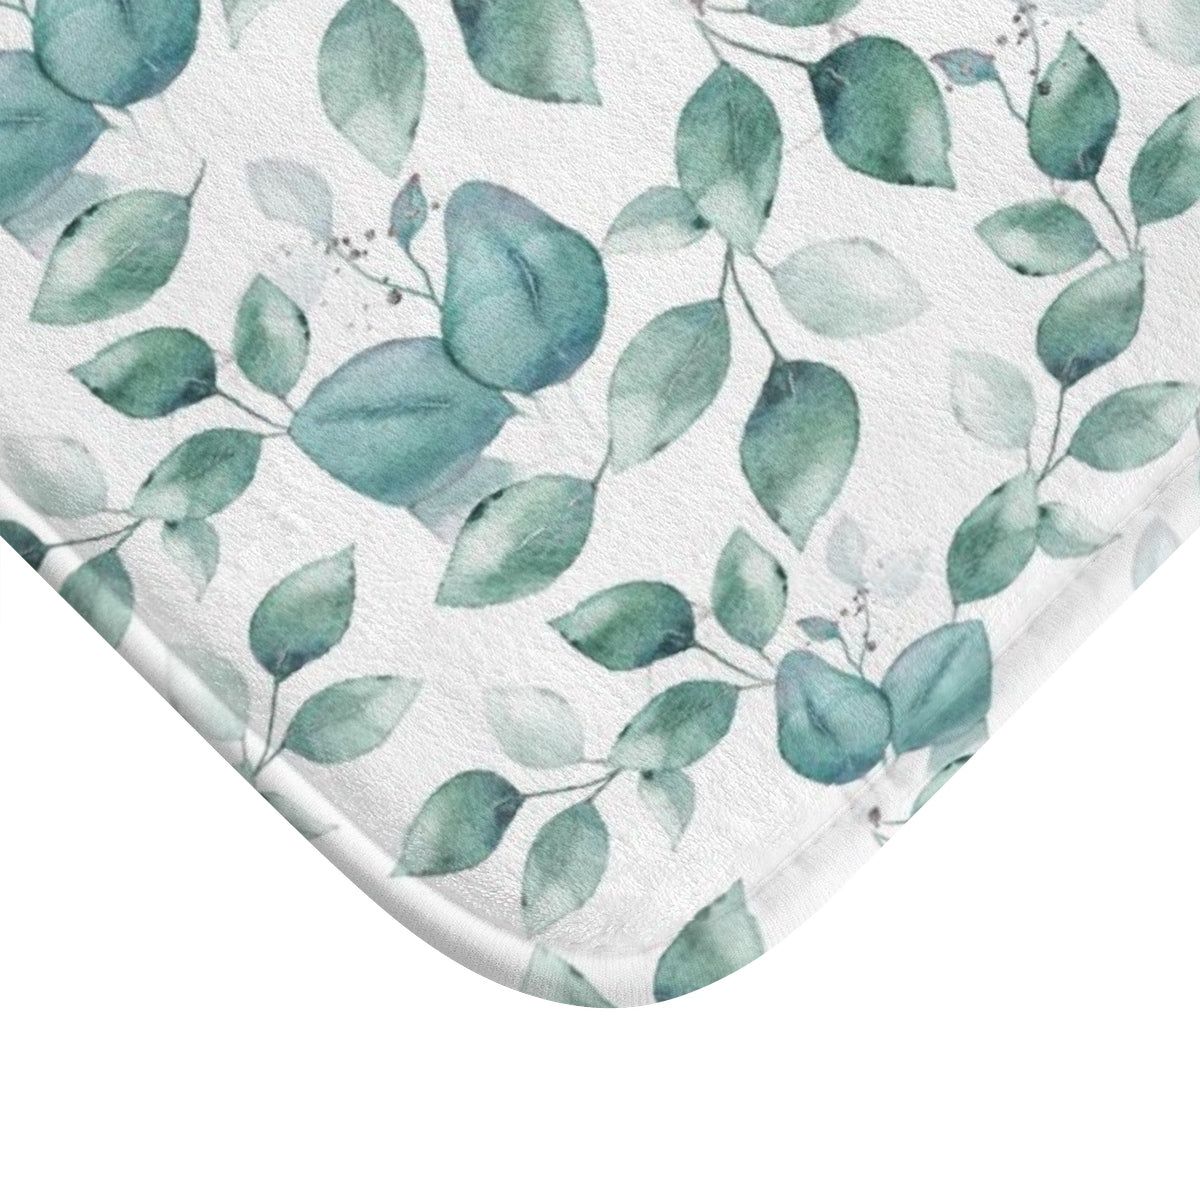 Light blue leaf pattern bath rug - Liz Kapiloto Art & Design